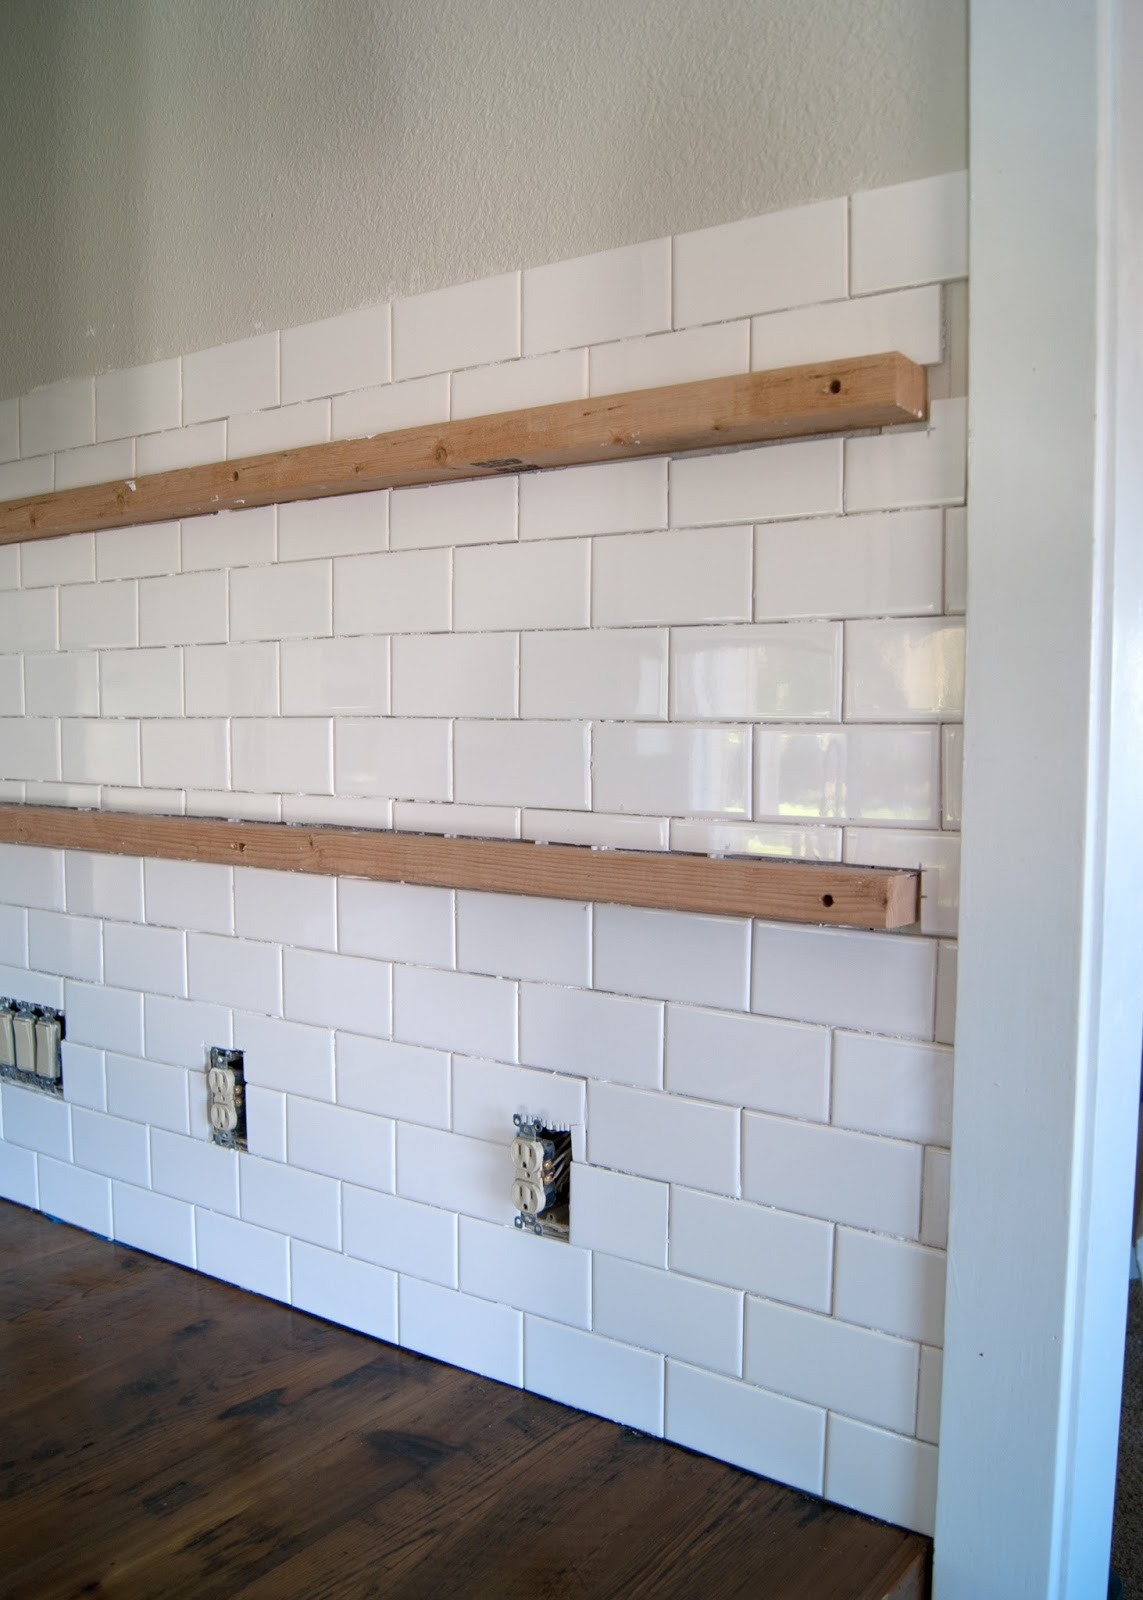 Subway Tile Installation Tips On Grouting With Fusion - Subway Tile